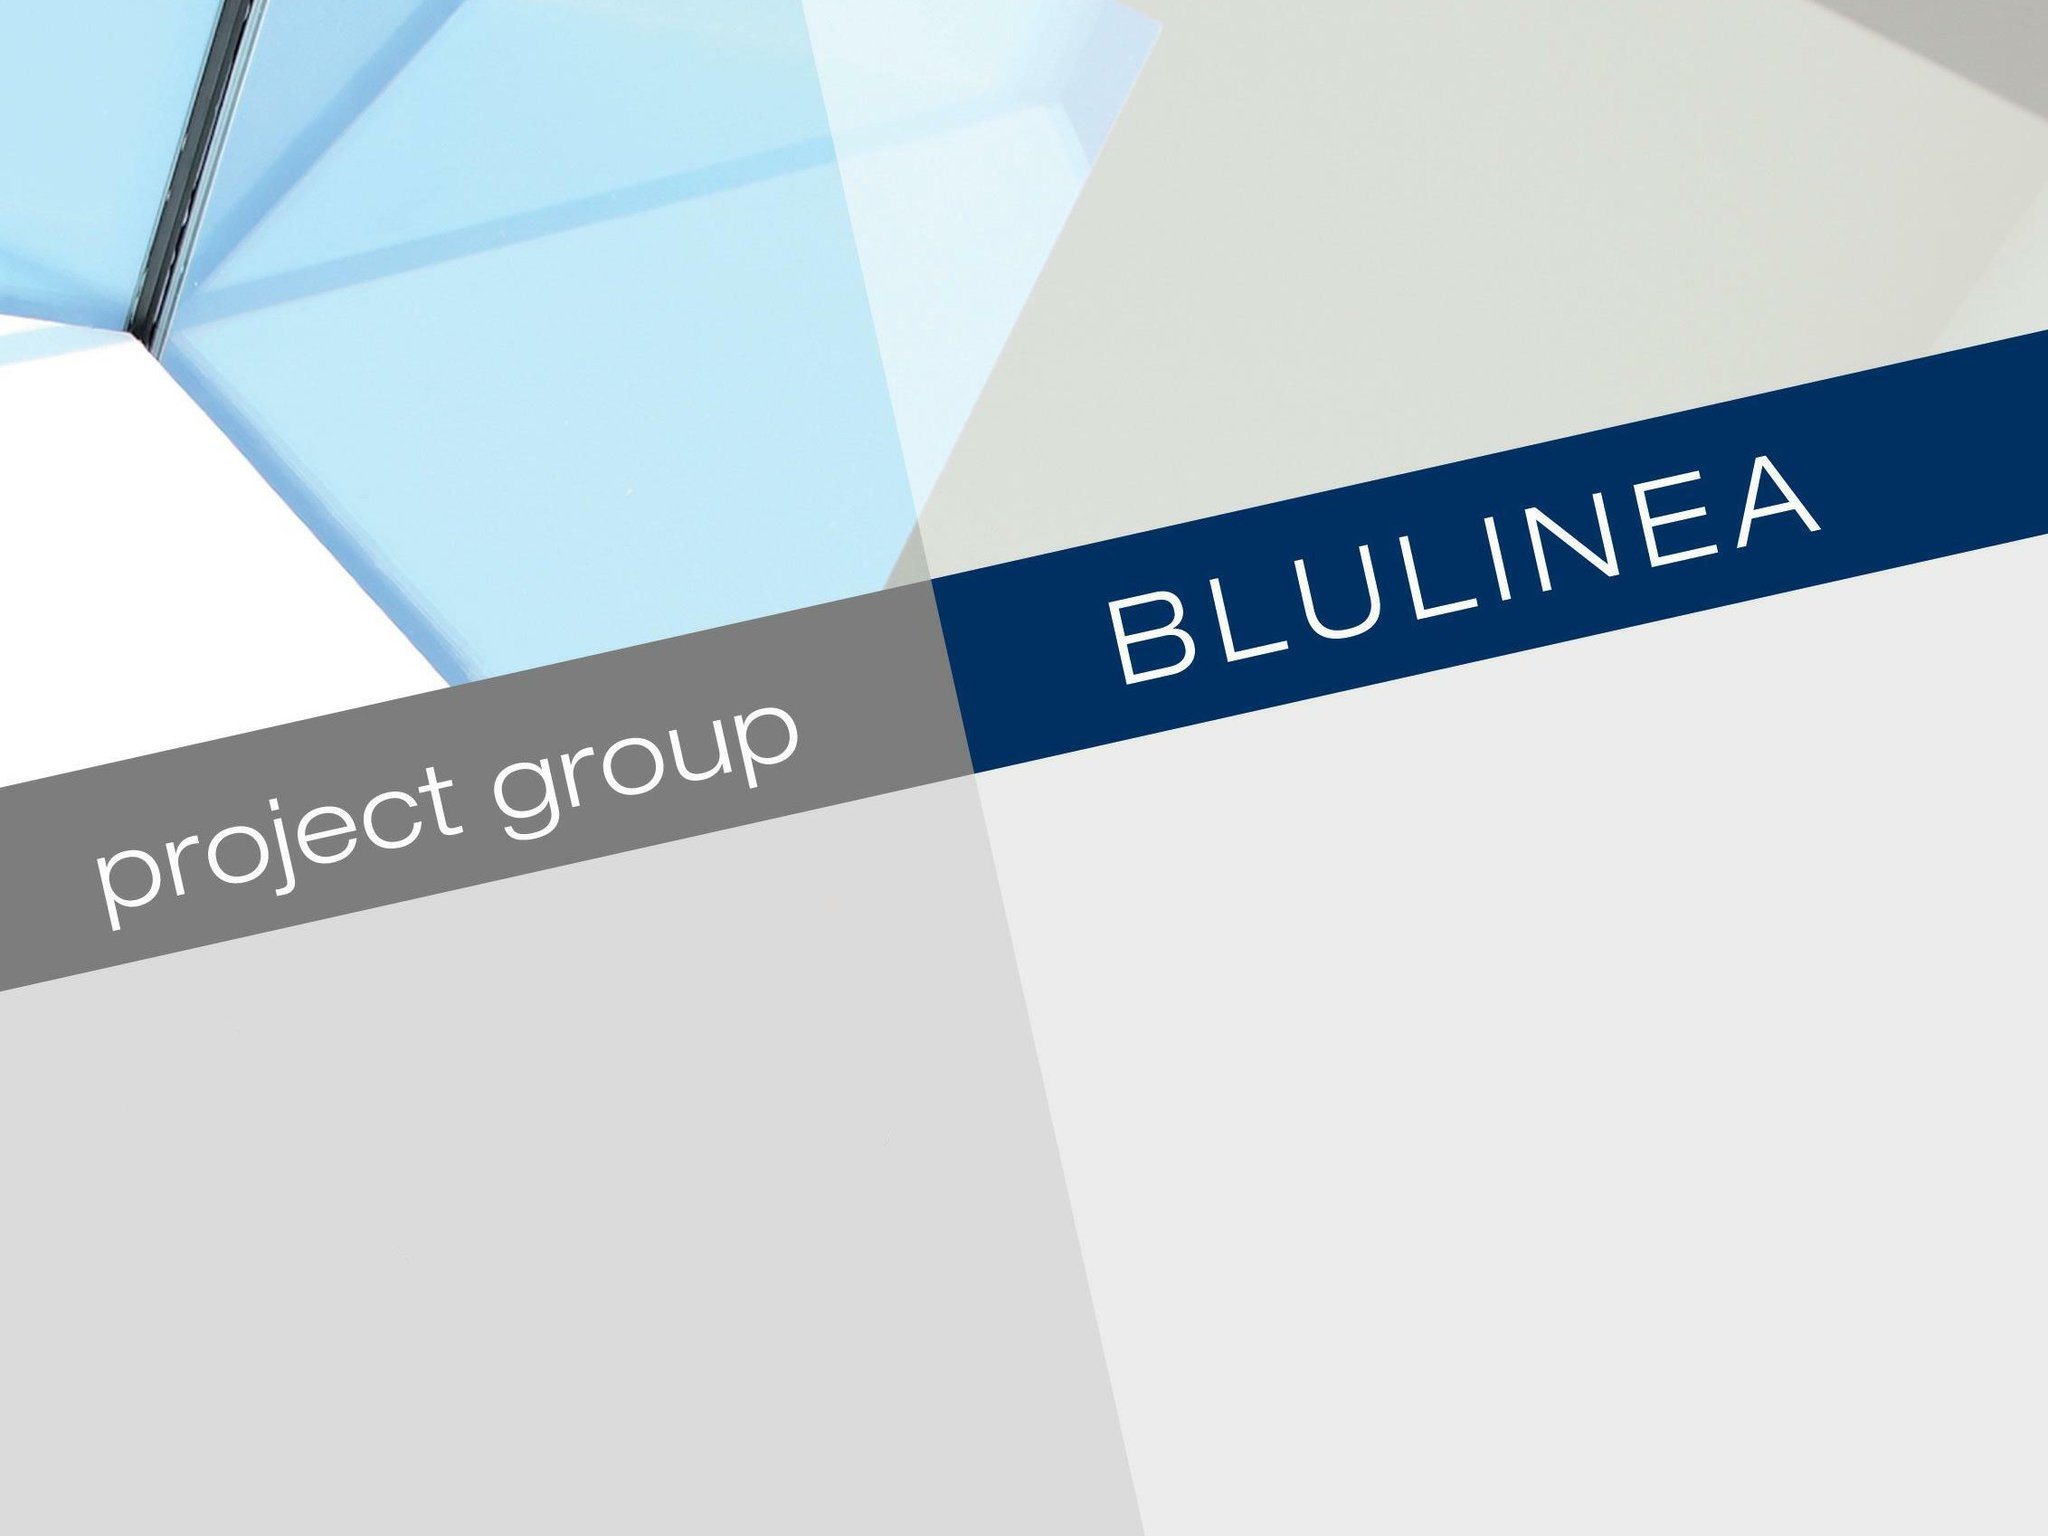 Blulinea Project Group